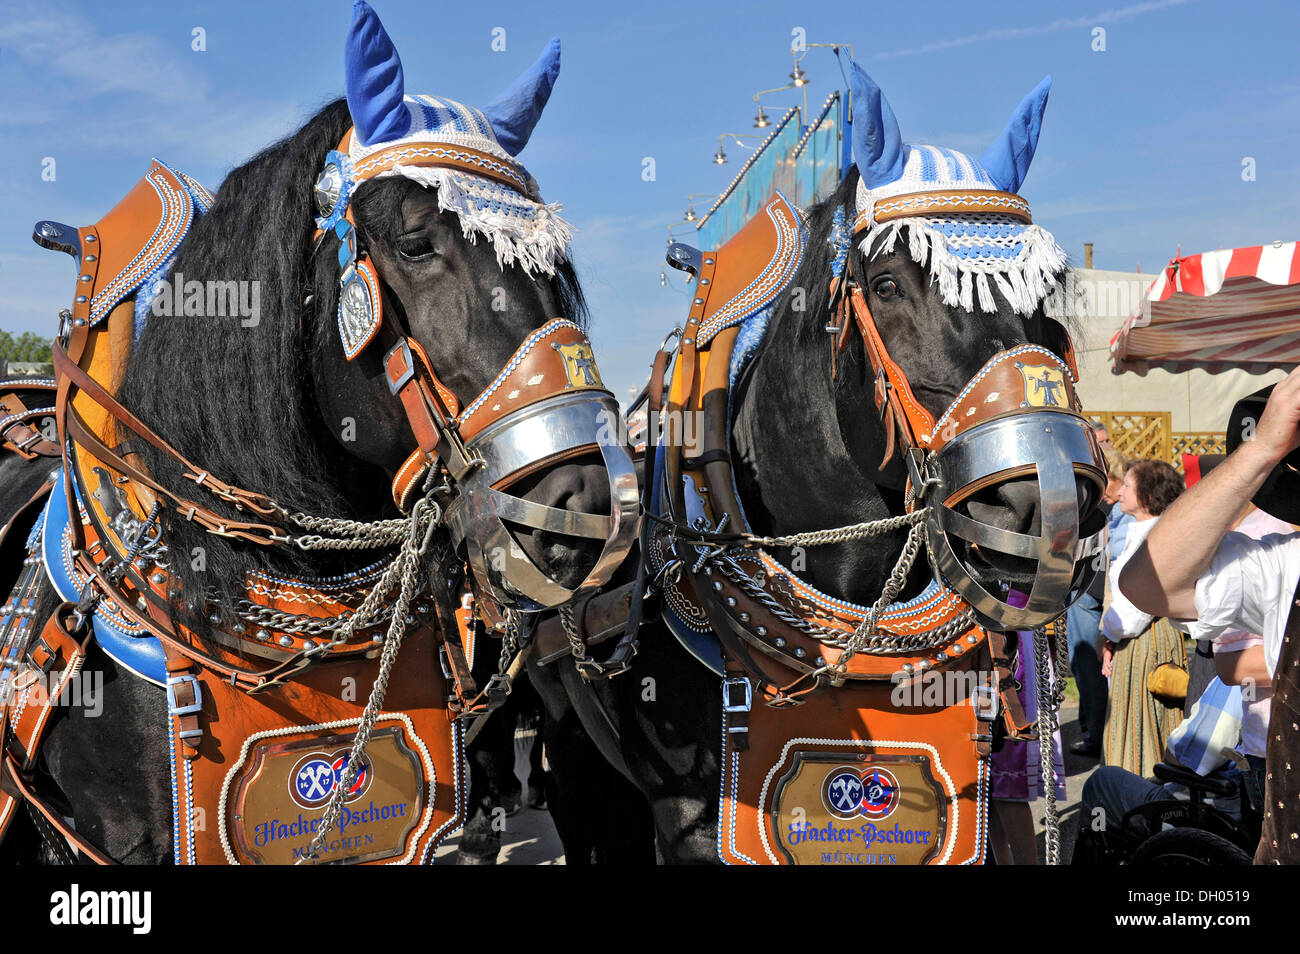 Horse-drawn brewery carriage, beer carriage, cold-blood horses, Oktoberfest festival, Munich, Upper Bavaria, Bavaria Stock Photo